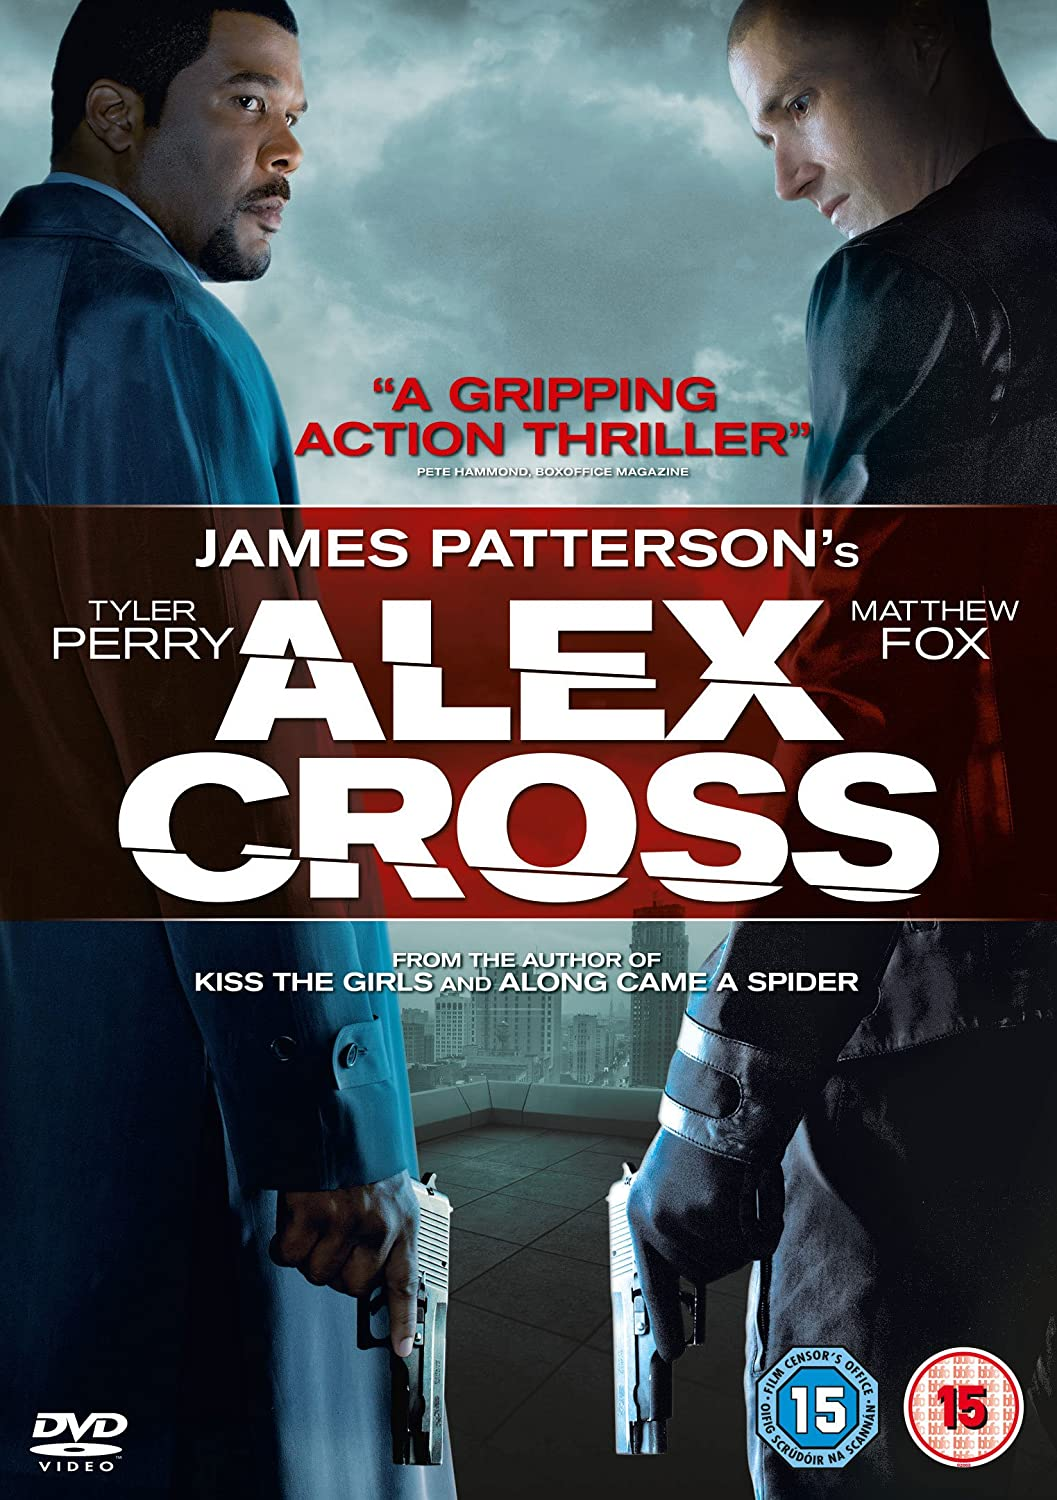 The Cult Of Me Film Review Alex Cross